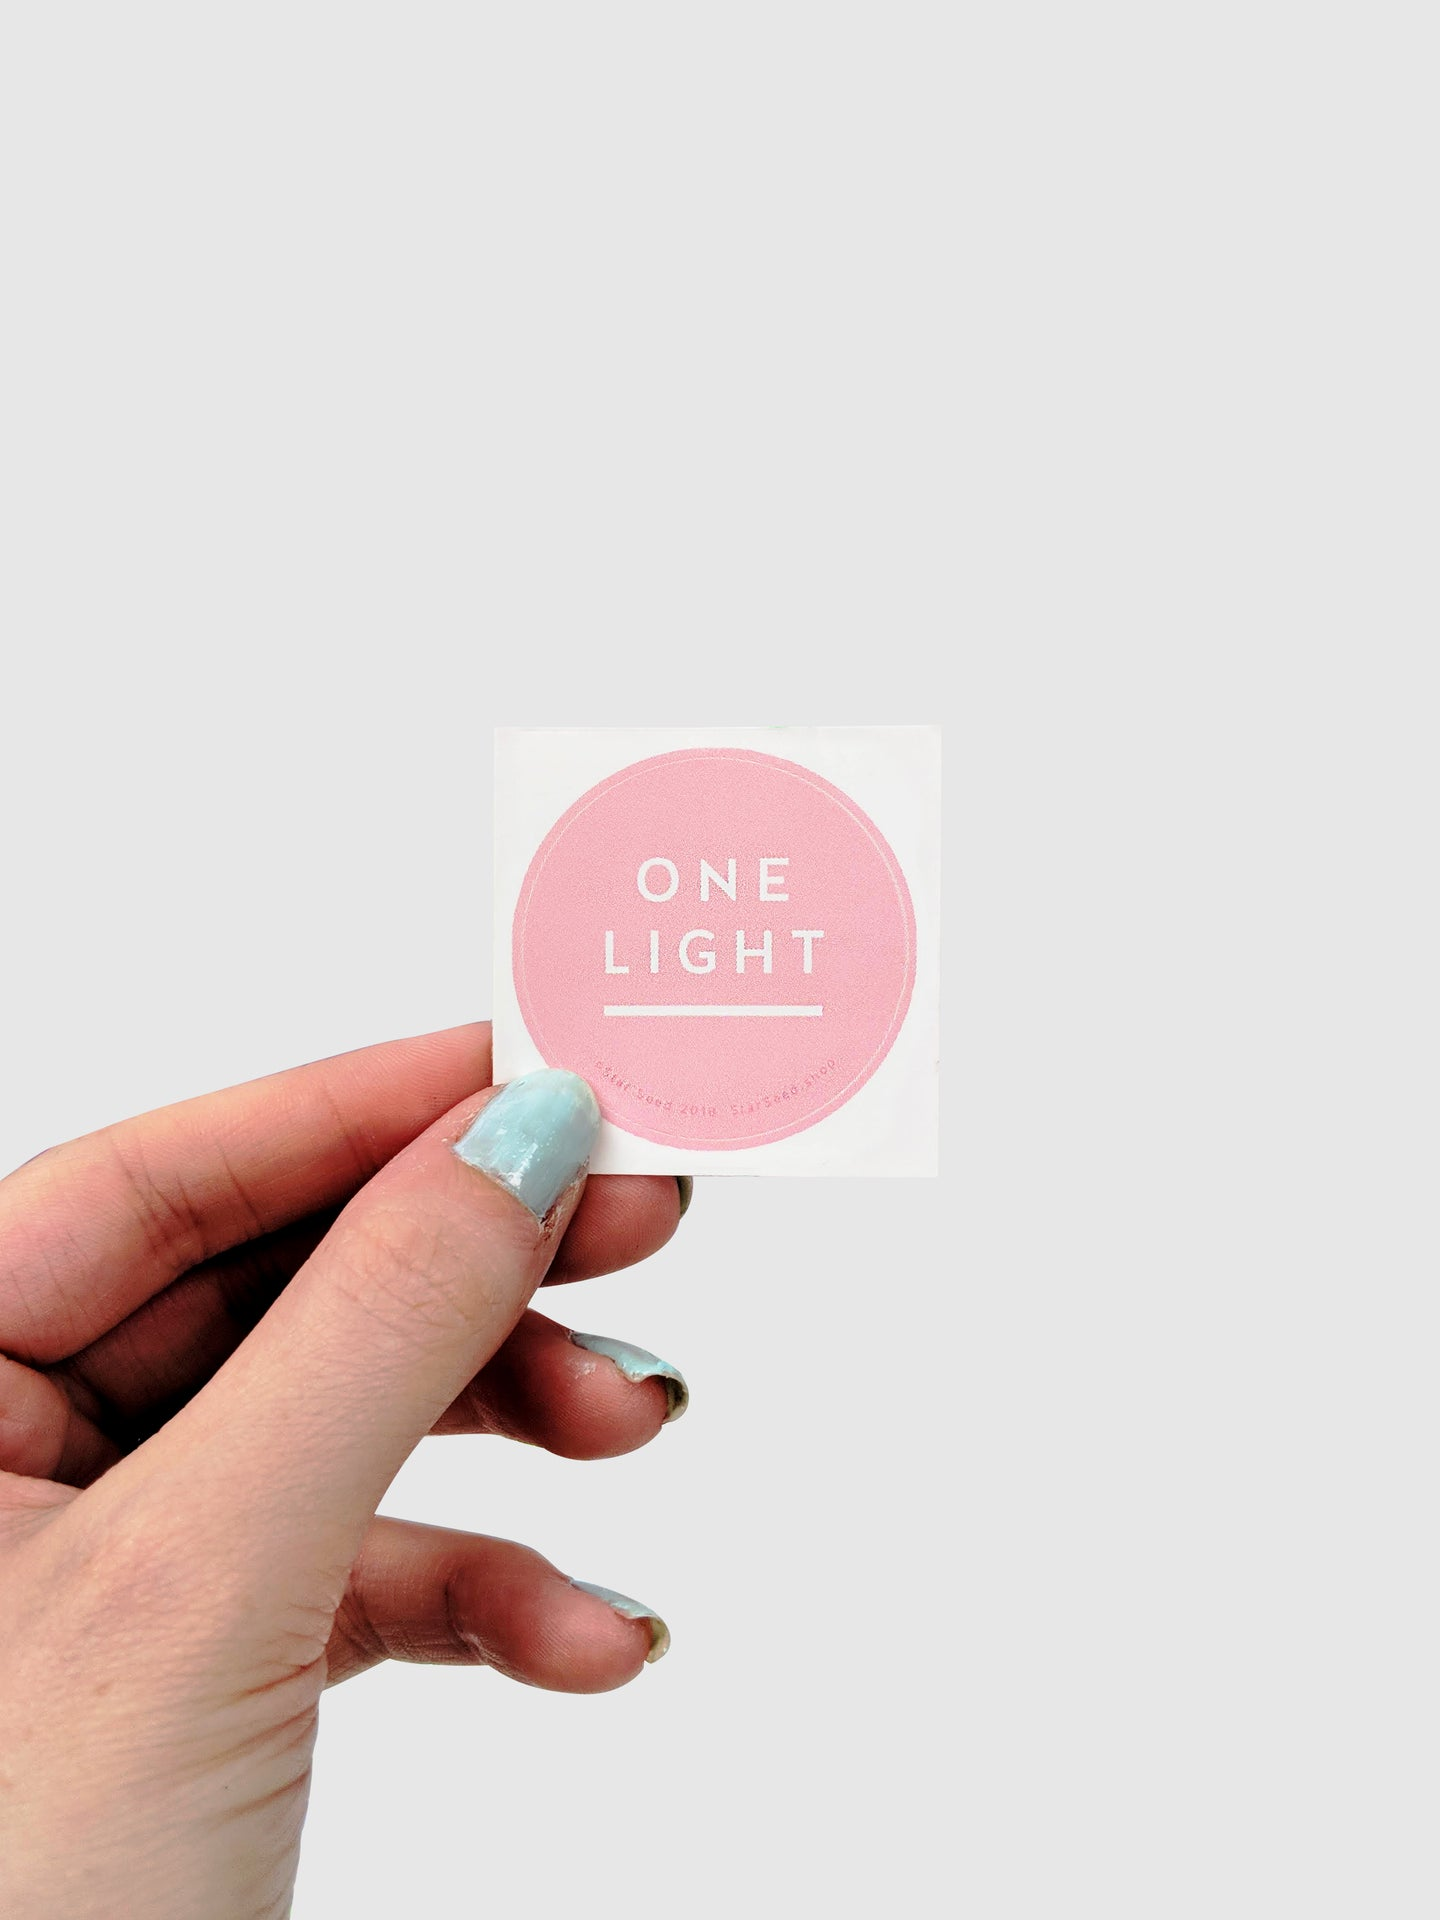 ONE LIGHT STICKER